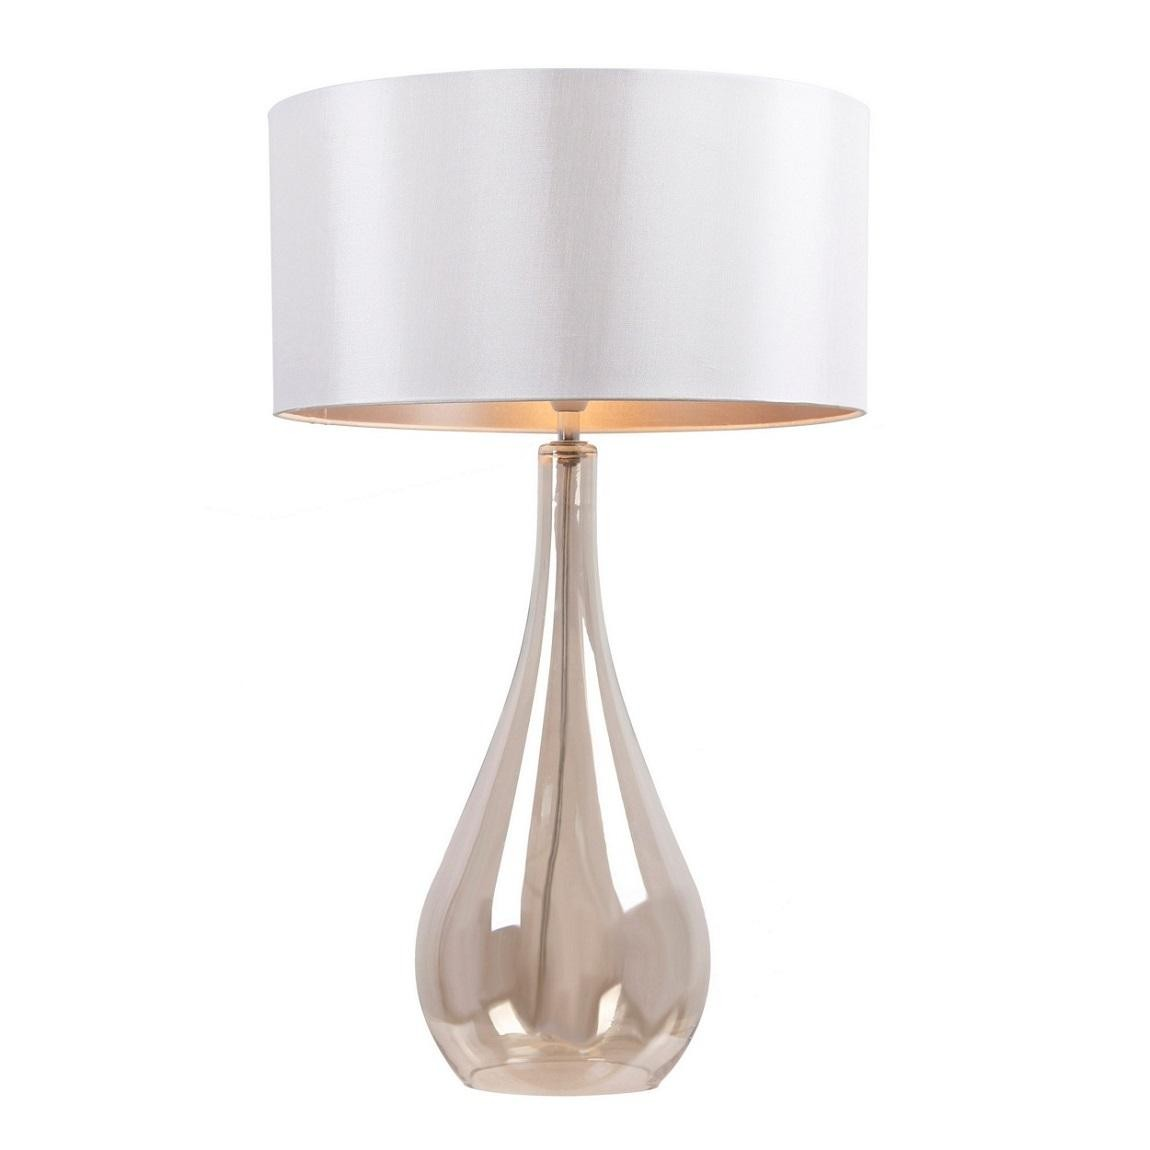 Debenhams Home Collection Claire Tall Table Lamp Bedside